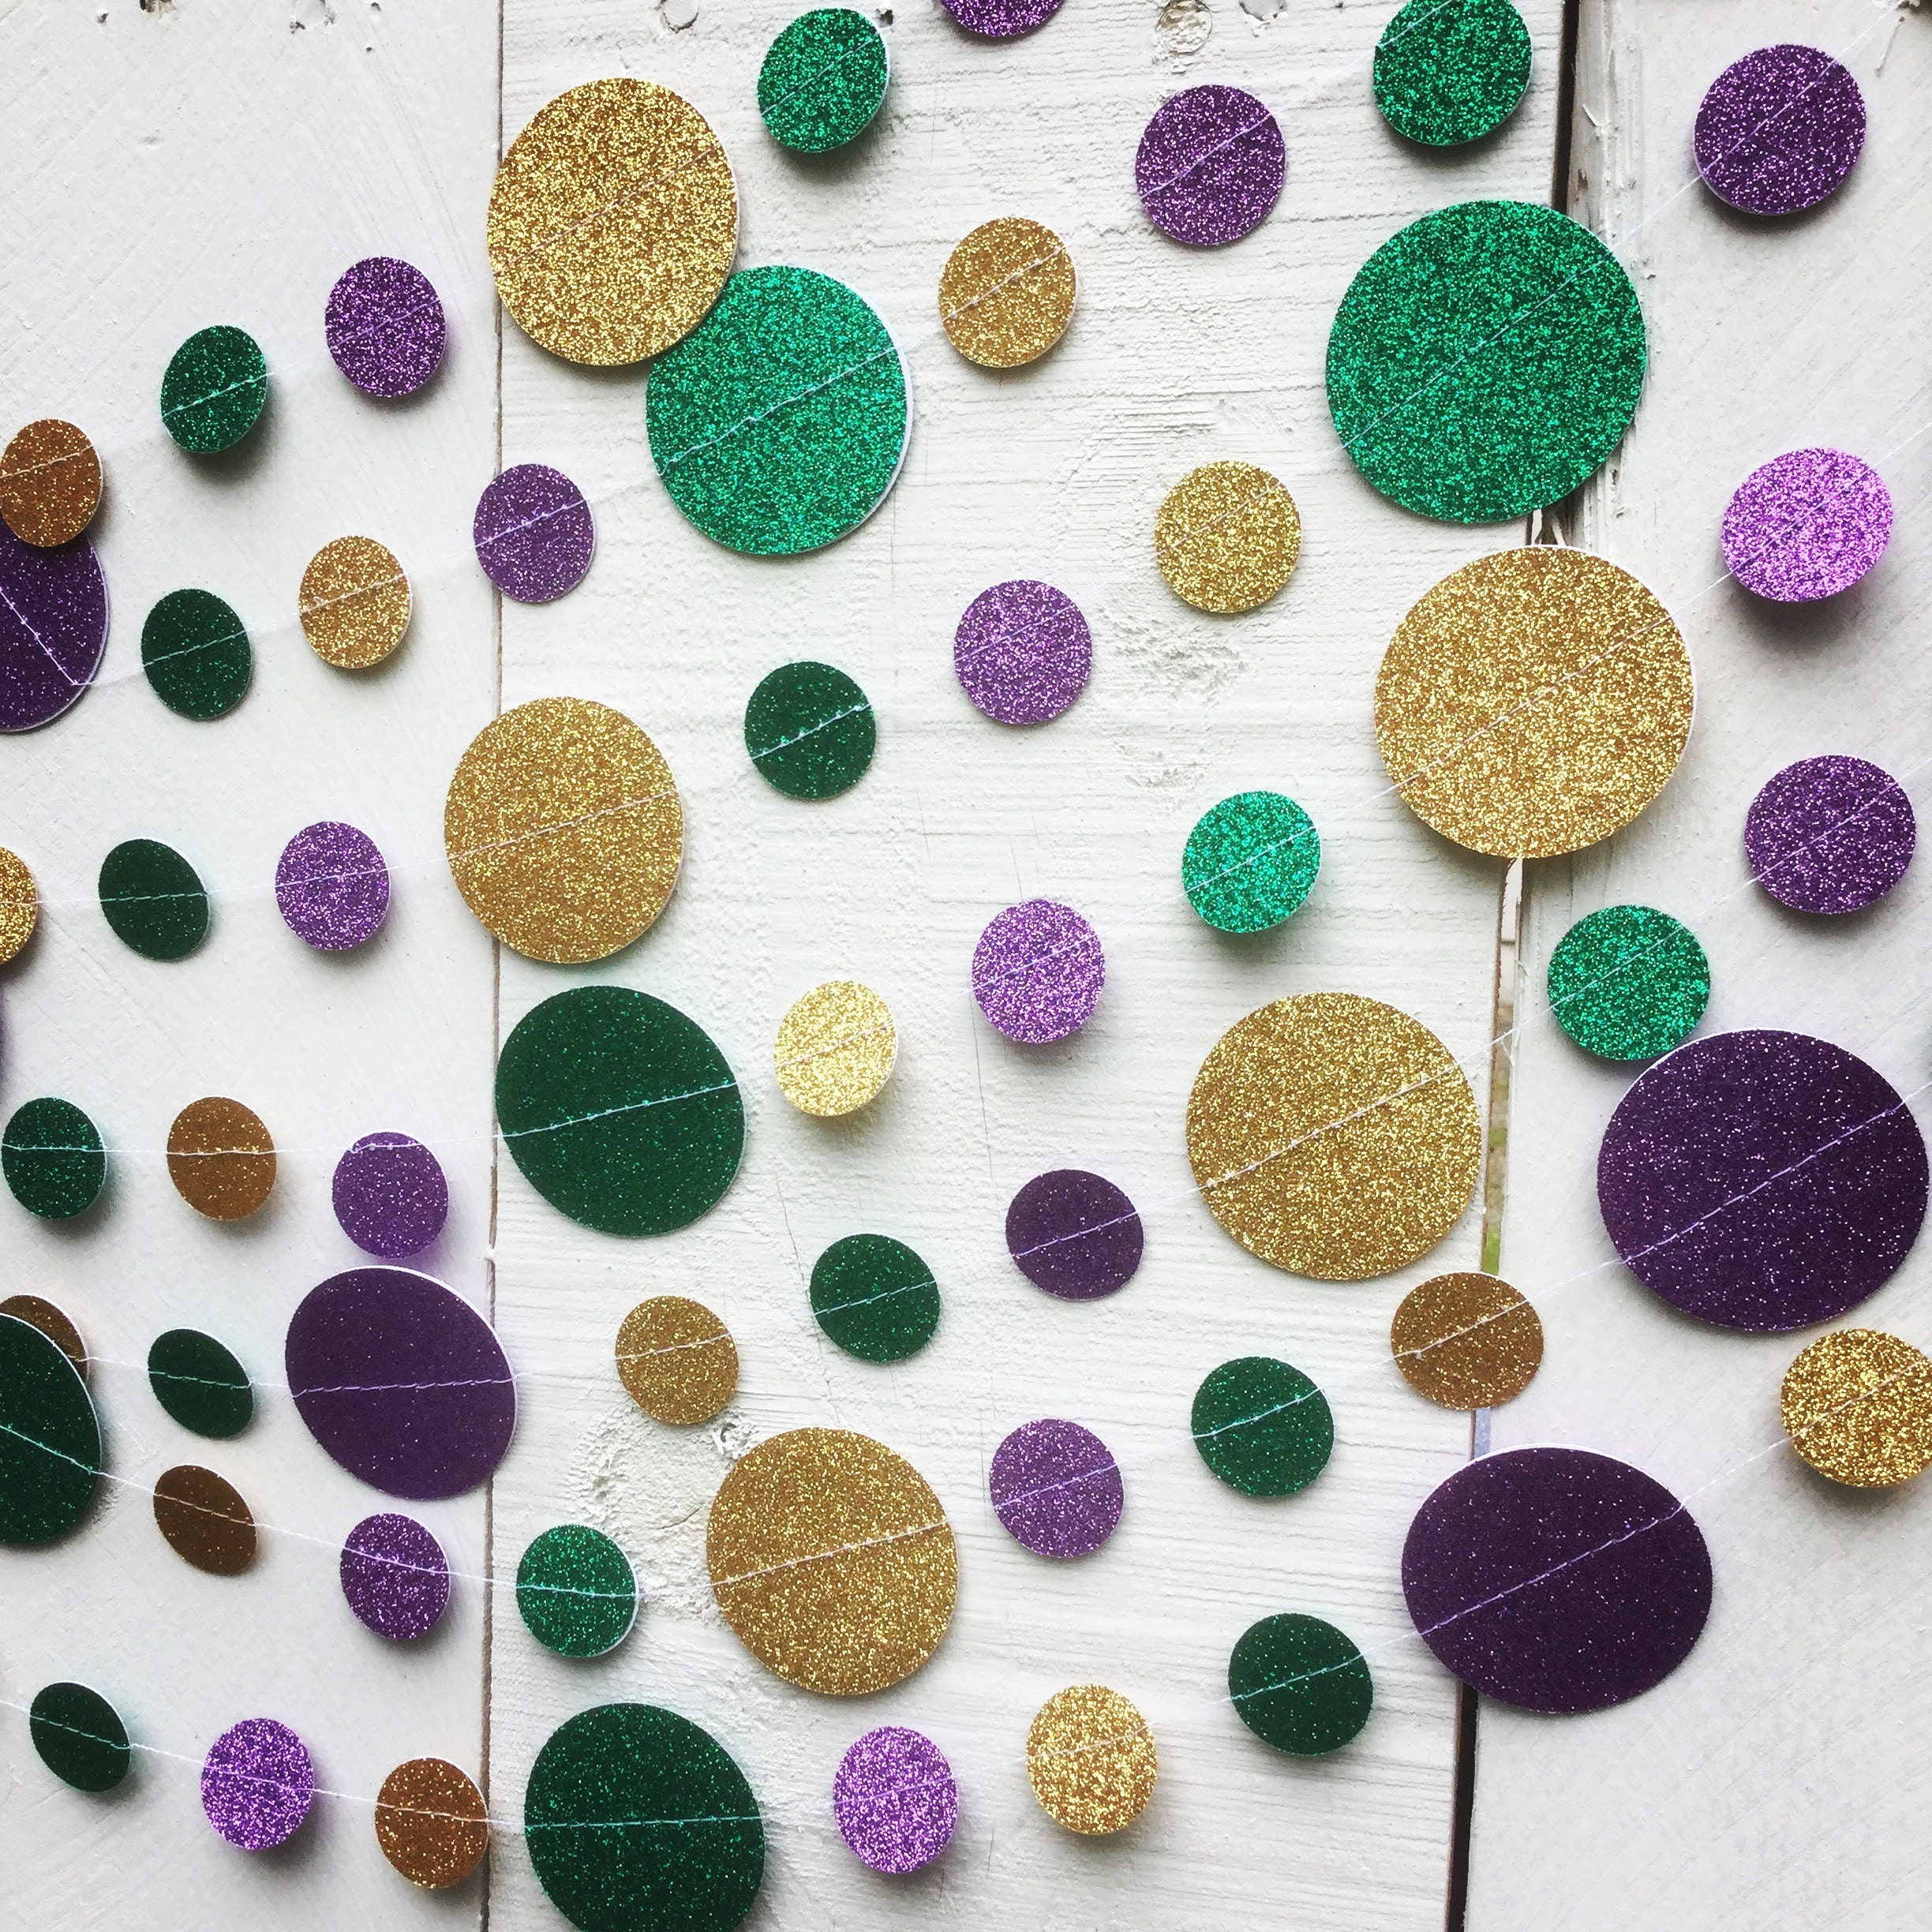 Green, gold, and purple glitter card stock circles sewn into a Mardi Gras garland decoration